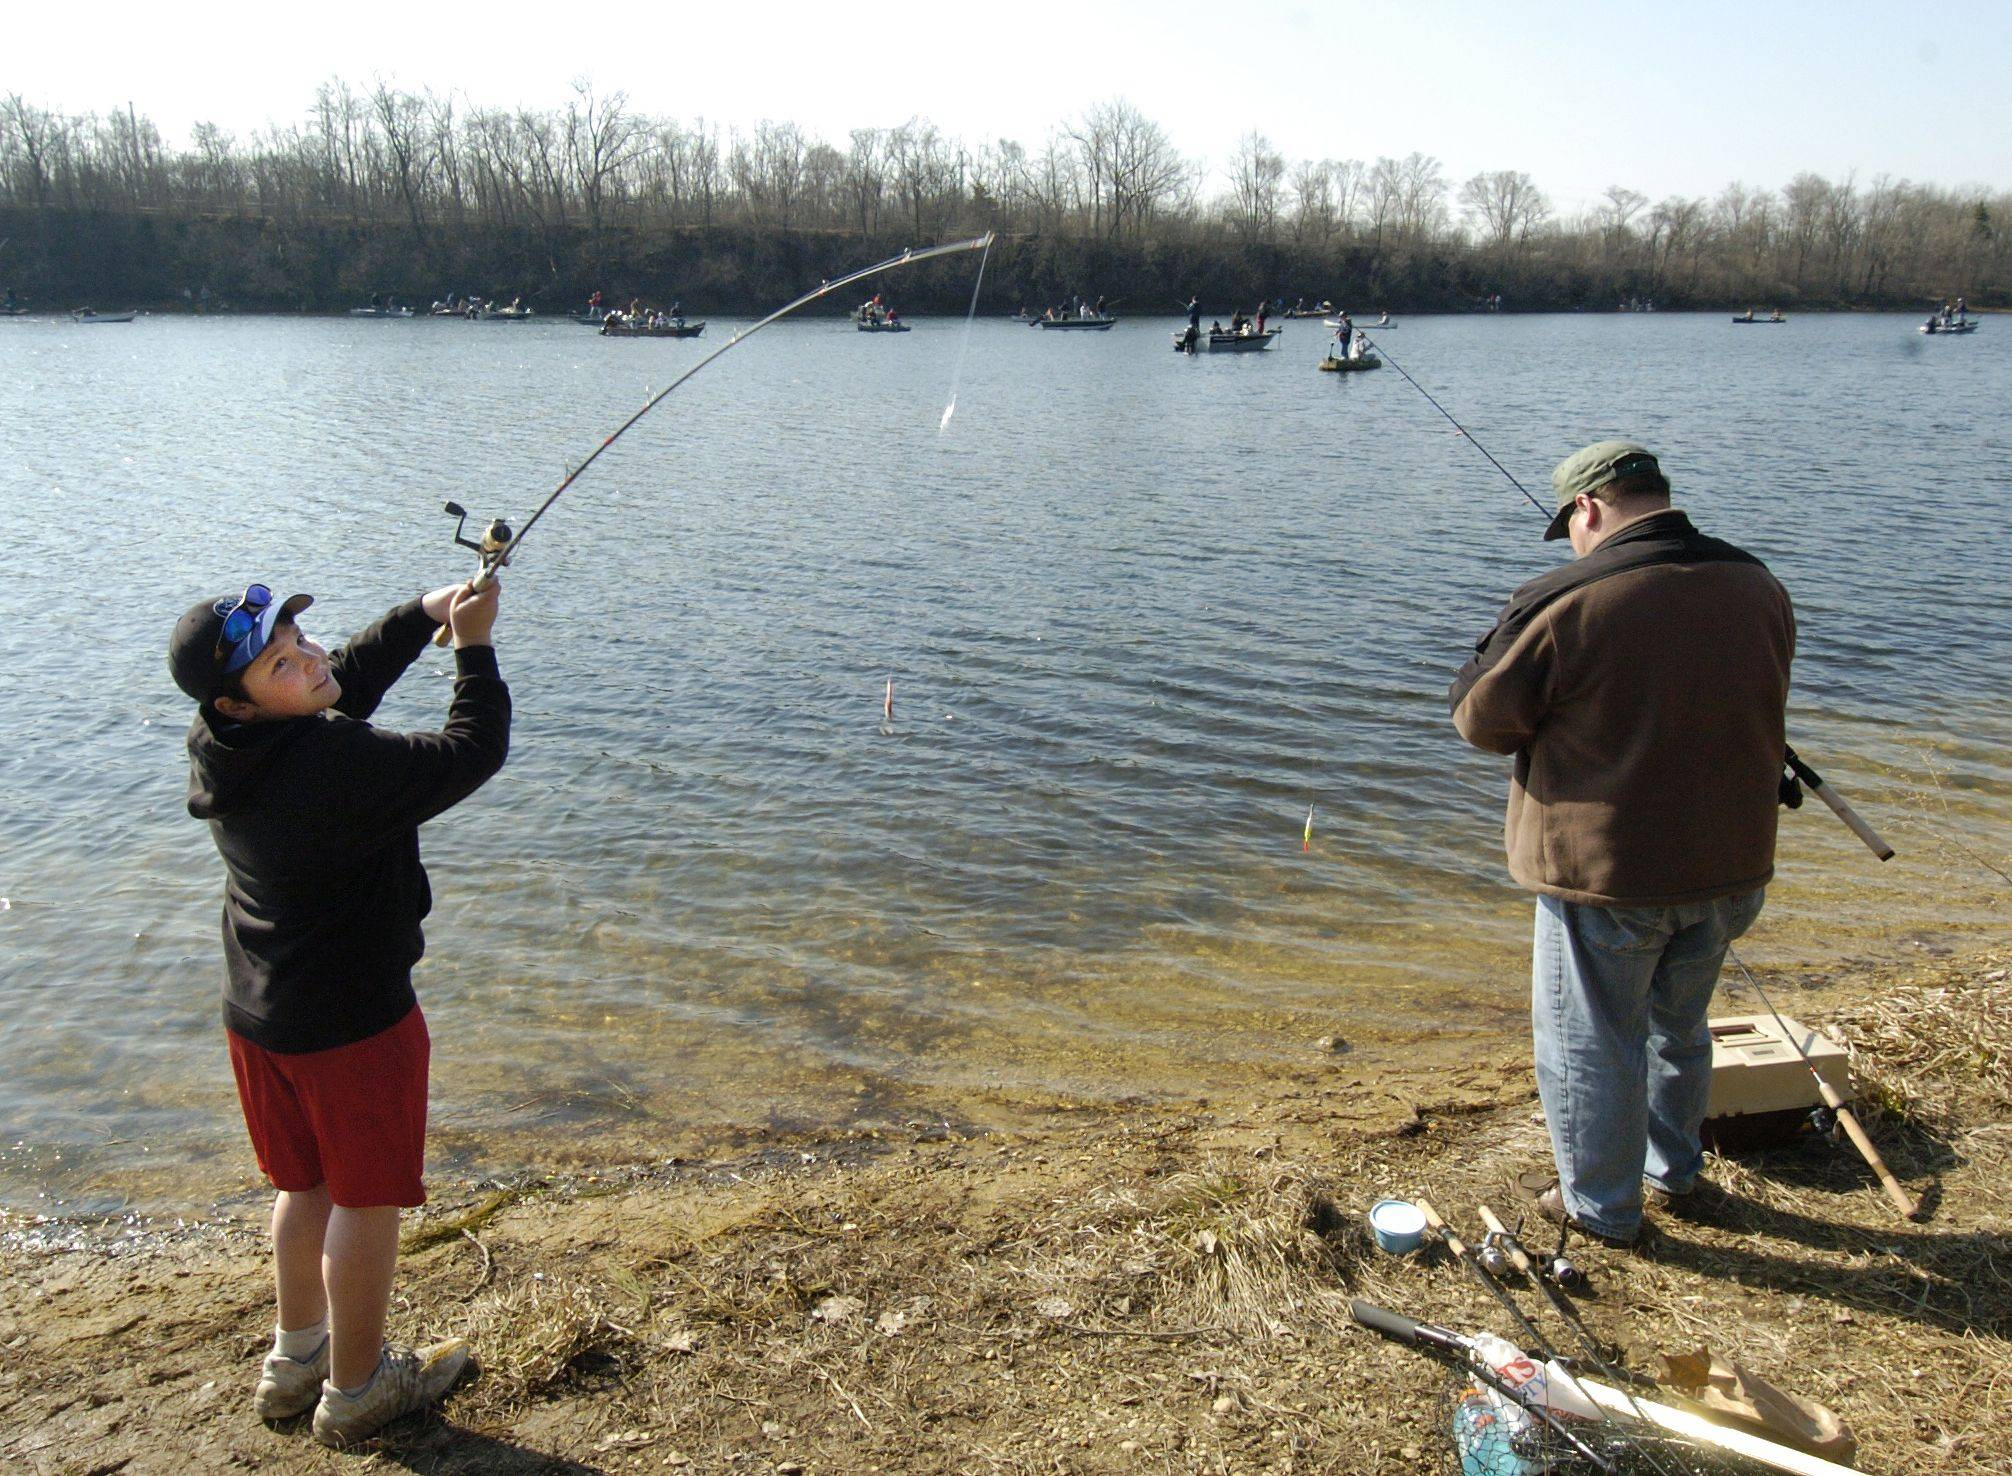 Outdoor recreation  including fishing at Blackwell's Silver Lake  will remain a key part of DuPage County's forest preserves, no matter who voters select in the Nov. 2 election.